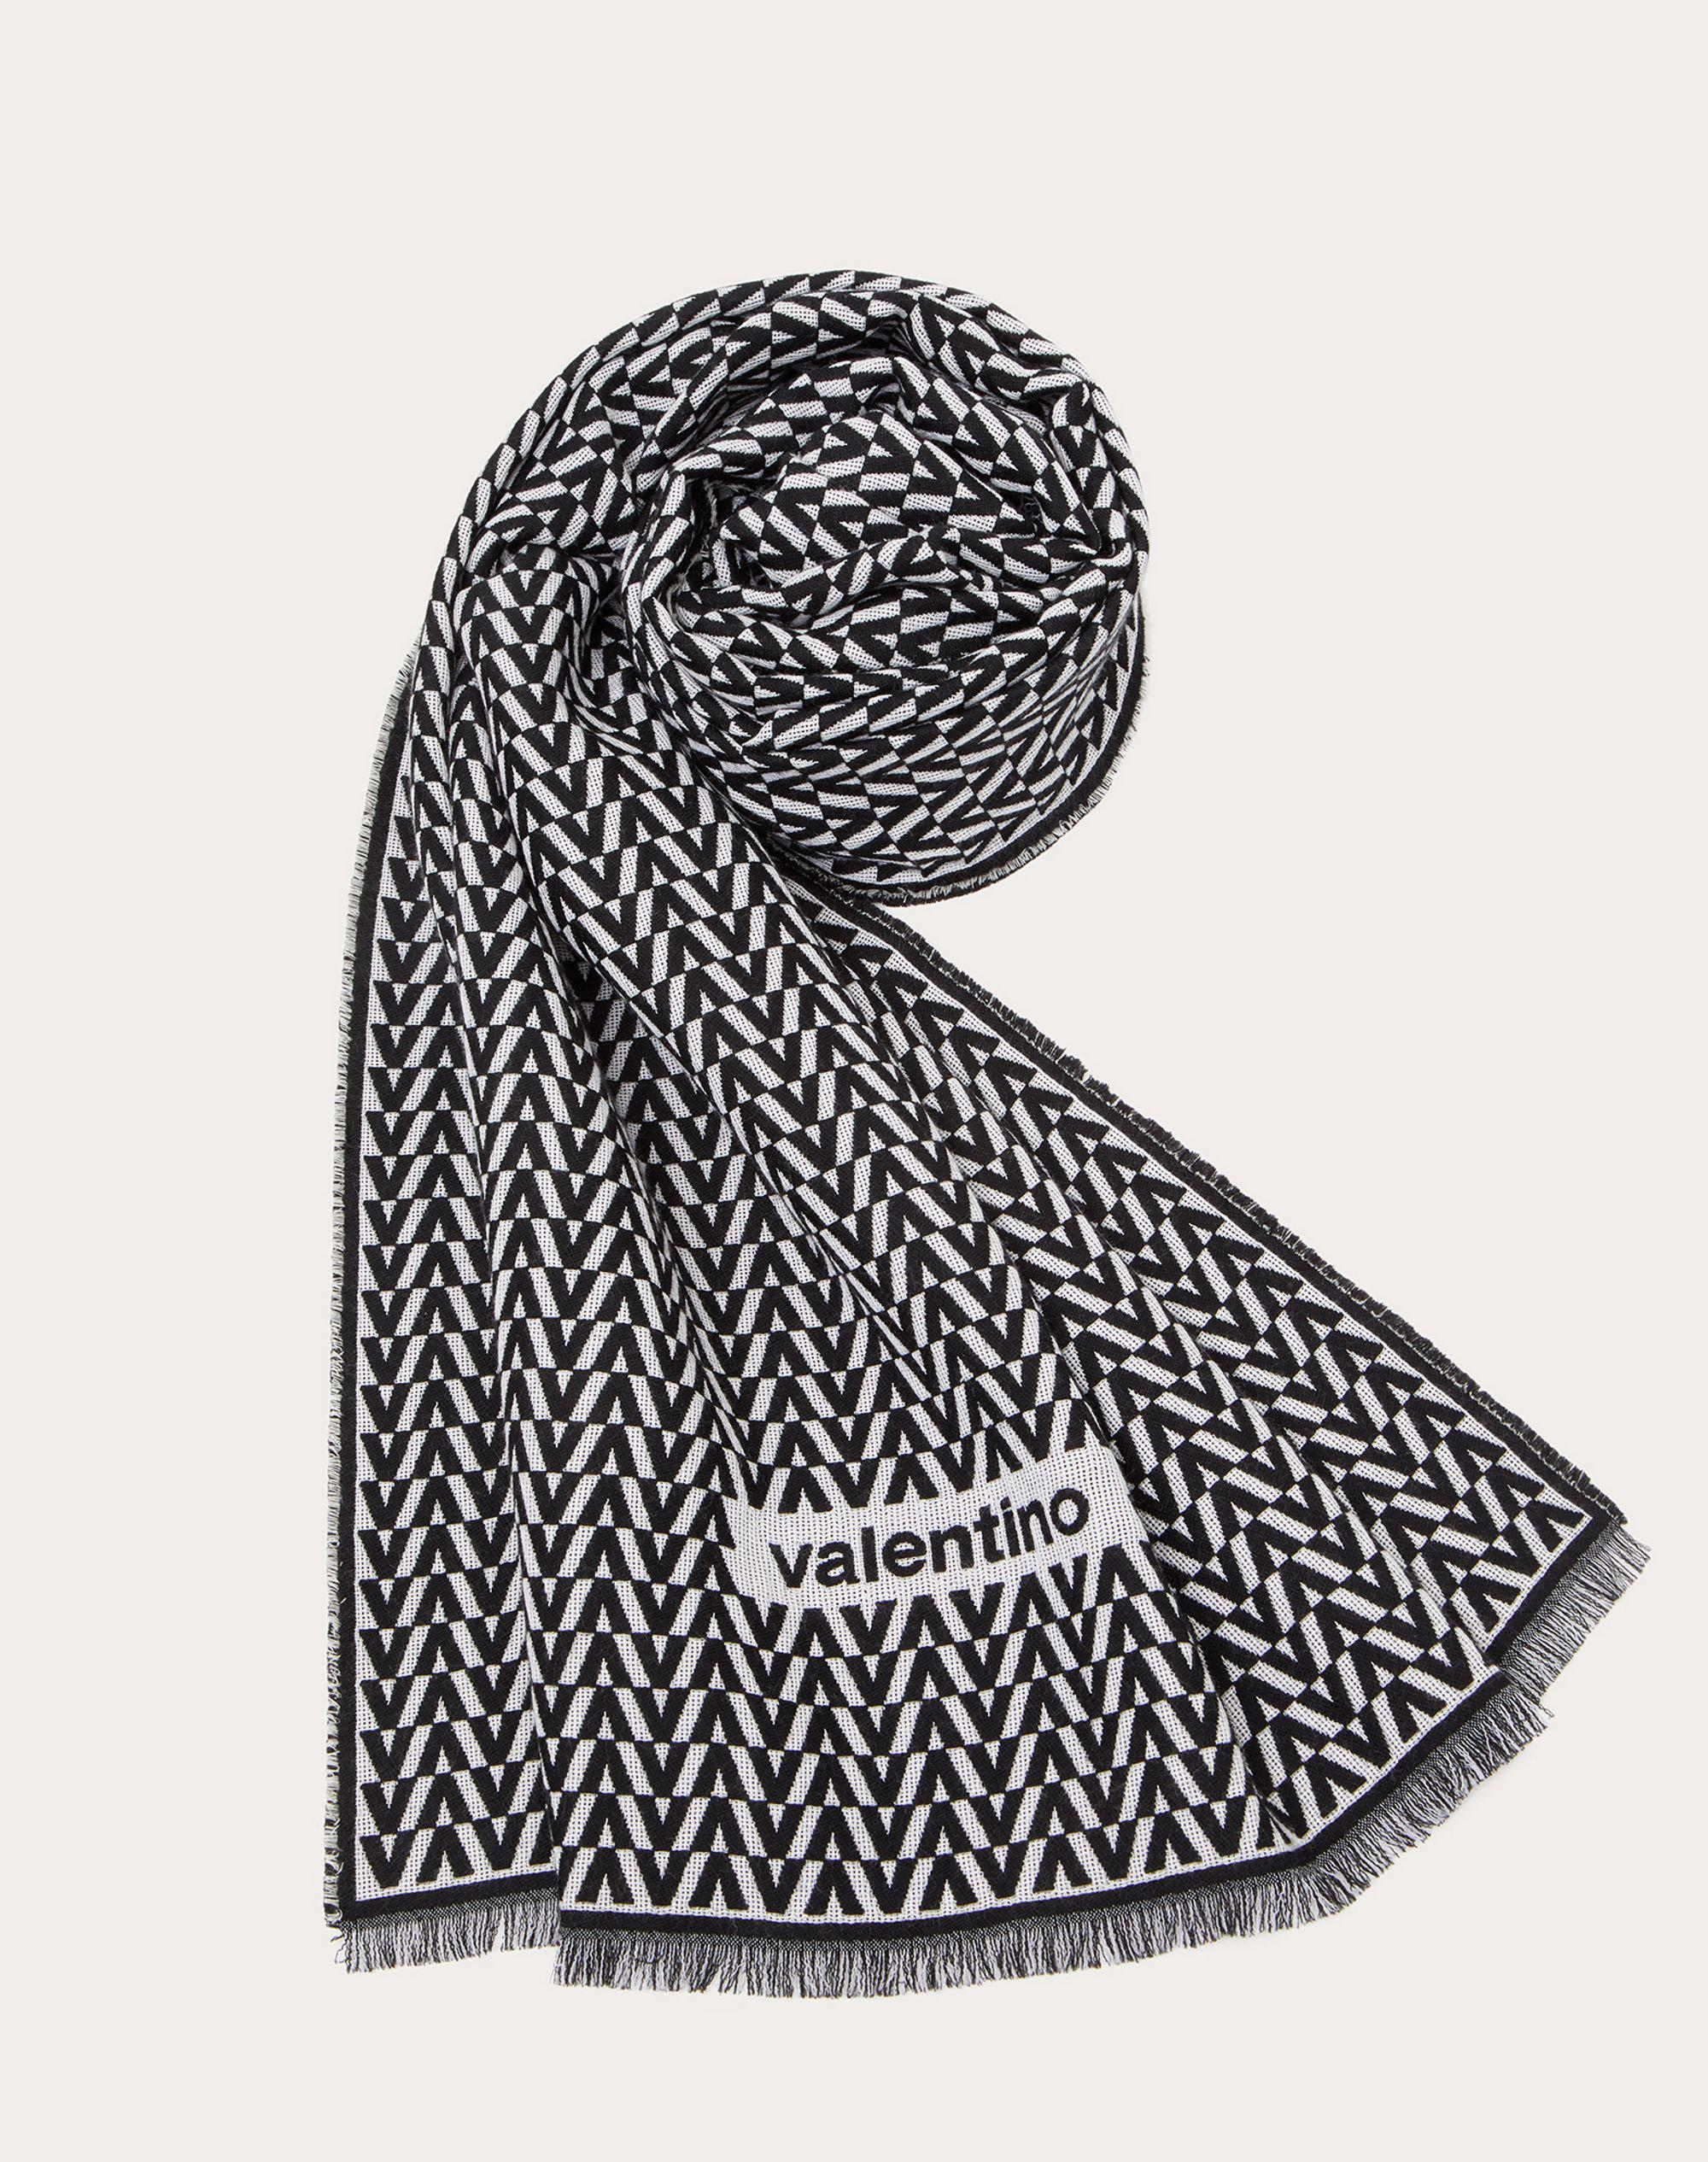 Optical Valentino Jacquard Stole in wool, cashmere and silk 75x200 cm